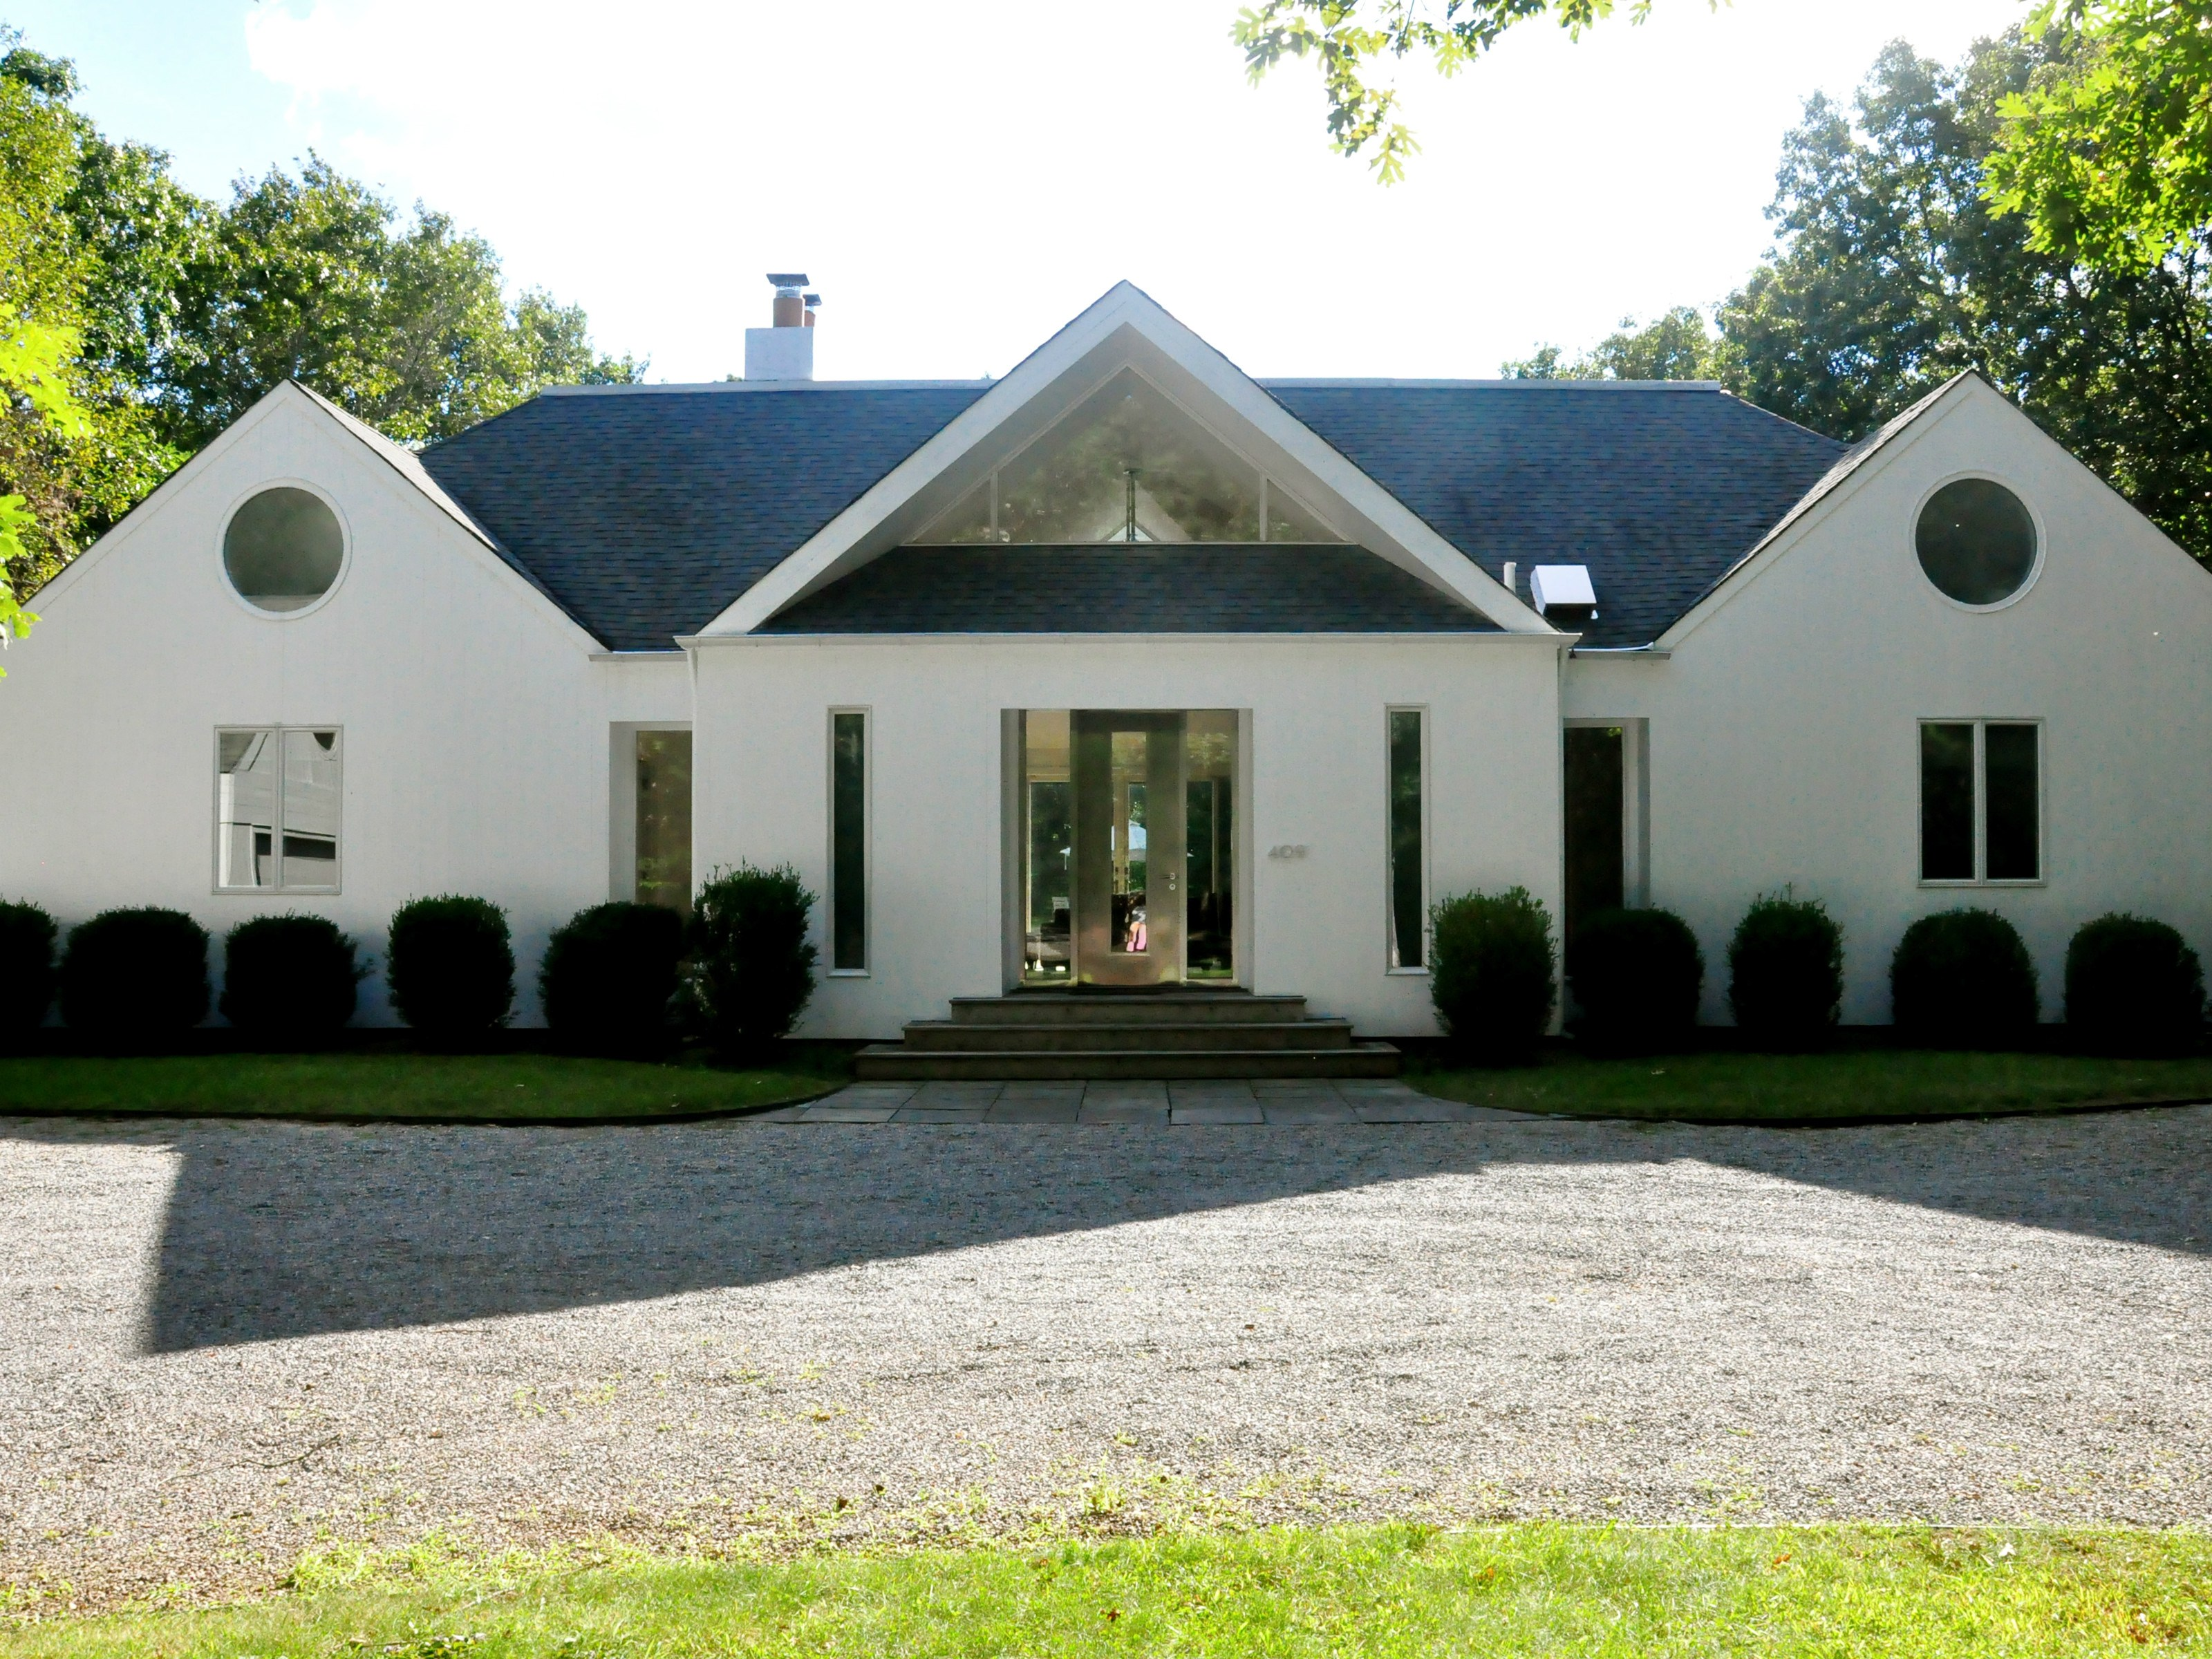 Single Family Home for Rent at Stylish Contemporary in East Hampton's East Hampton, New York 11937 United States